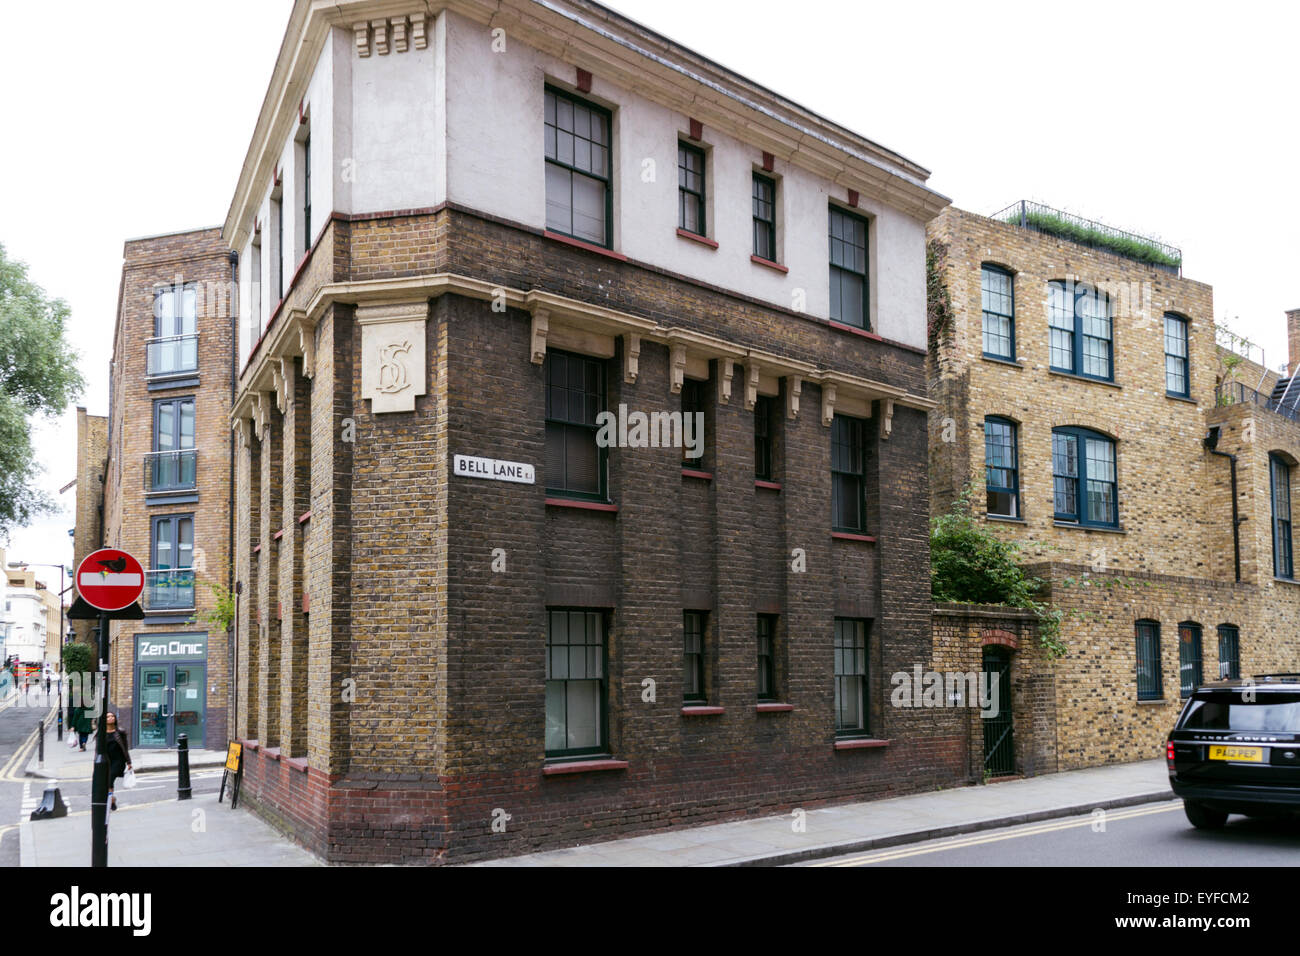 London, UK. 27th July, 2015. 66-68 Bell Lane. Controversy surrounds Turner Prize winning artist Tracy Emin's plans - Stock Image